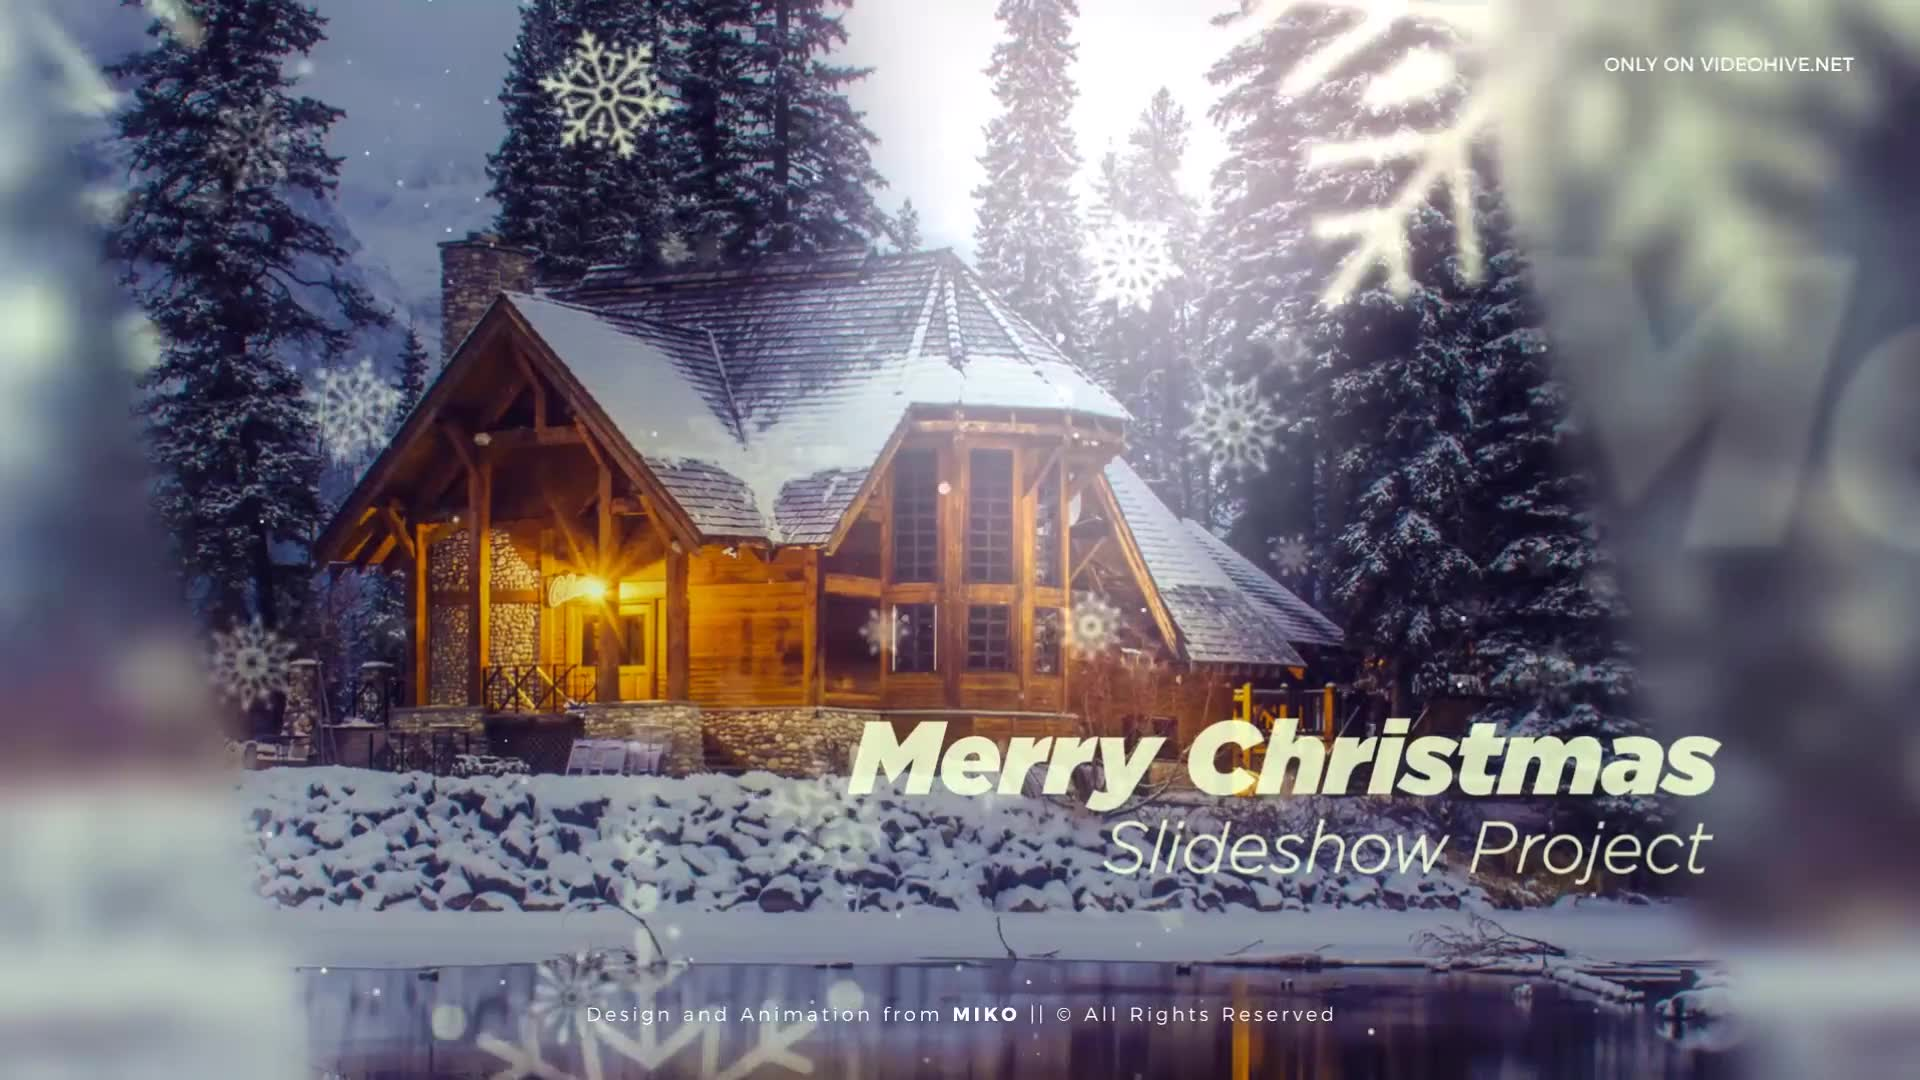 Christmas Slideshow Videohive 23008275 After Effects Image 2